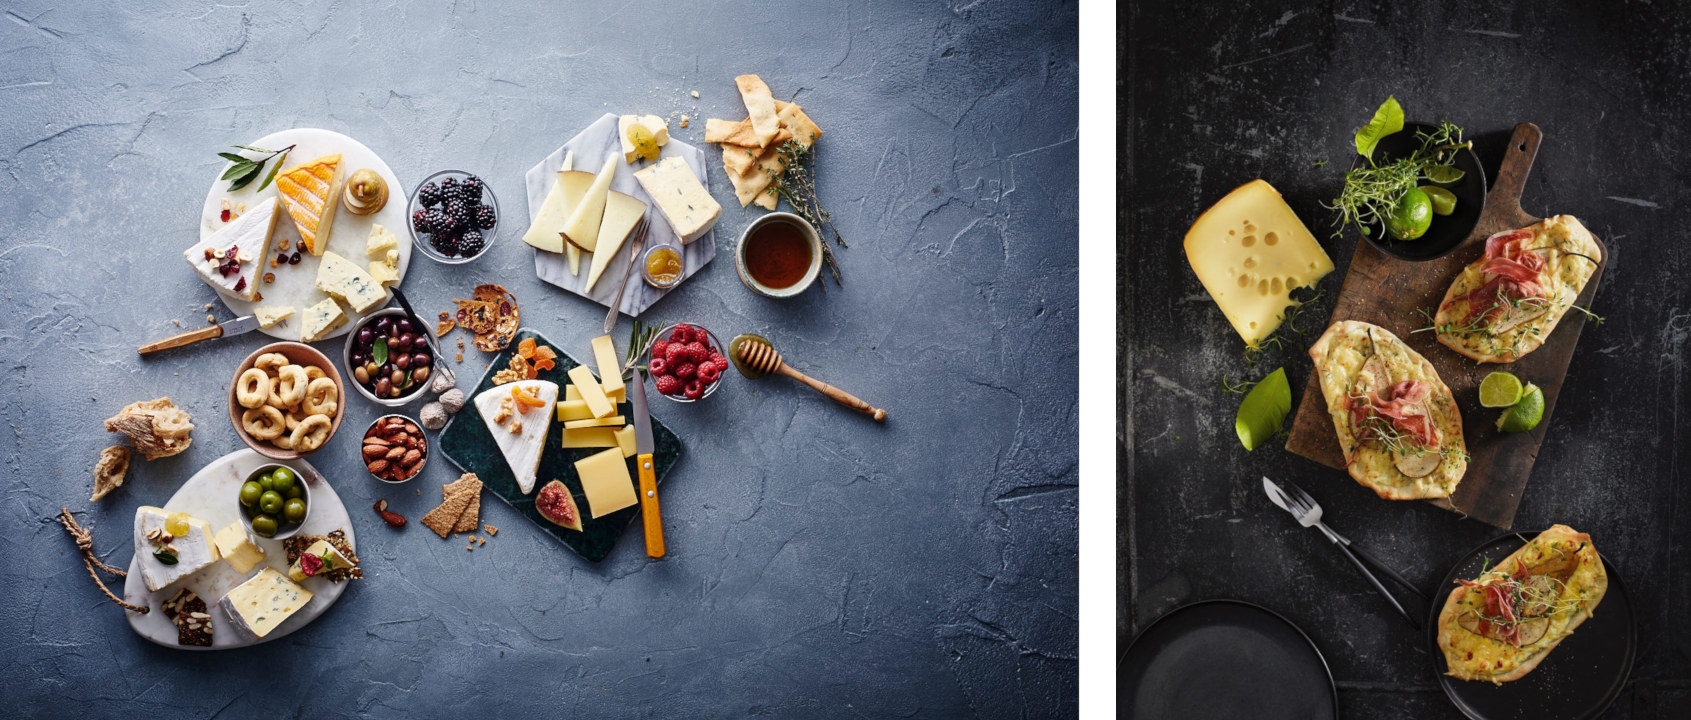 Wernersson cheese in Scan Magazine May 2019